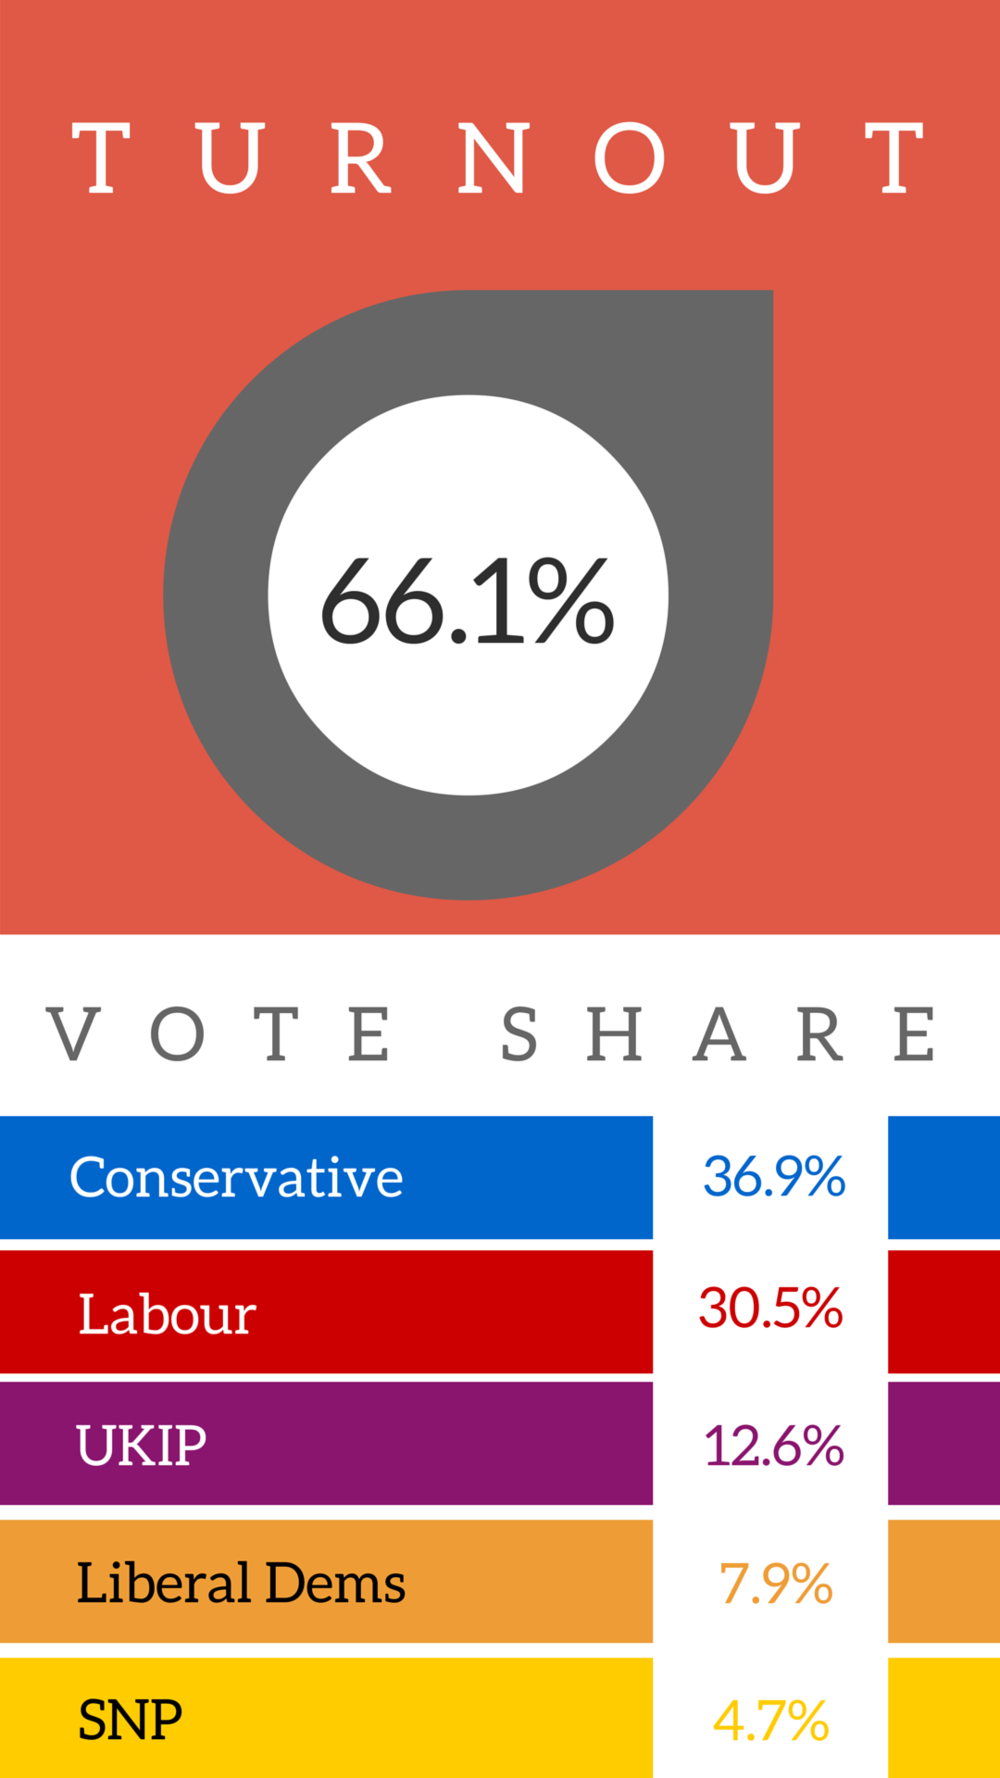 5times4 uk election vote share and turnout figures